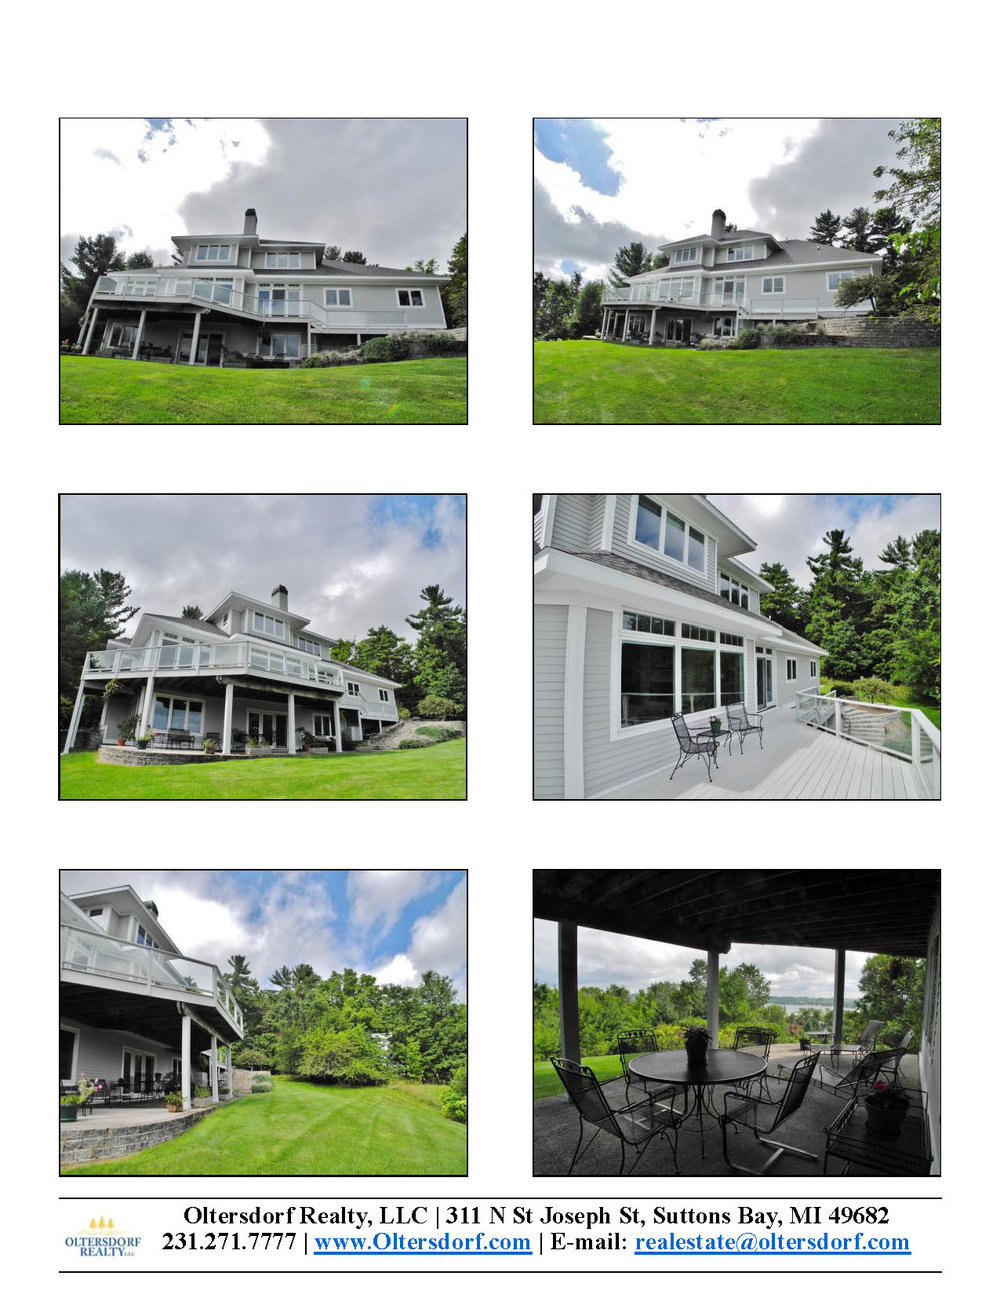 424 N School Hill Court, Suttons Bay real estate for sale by Oltersdorf Realty LLC - Information packet (4).jpg